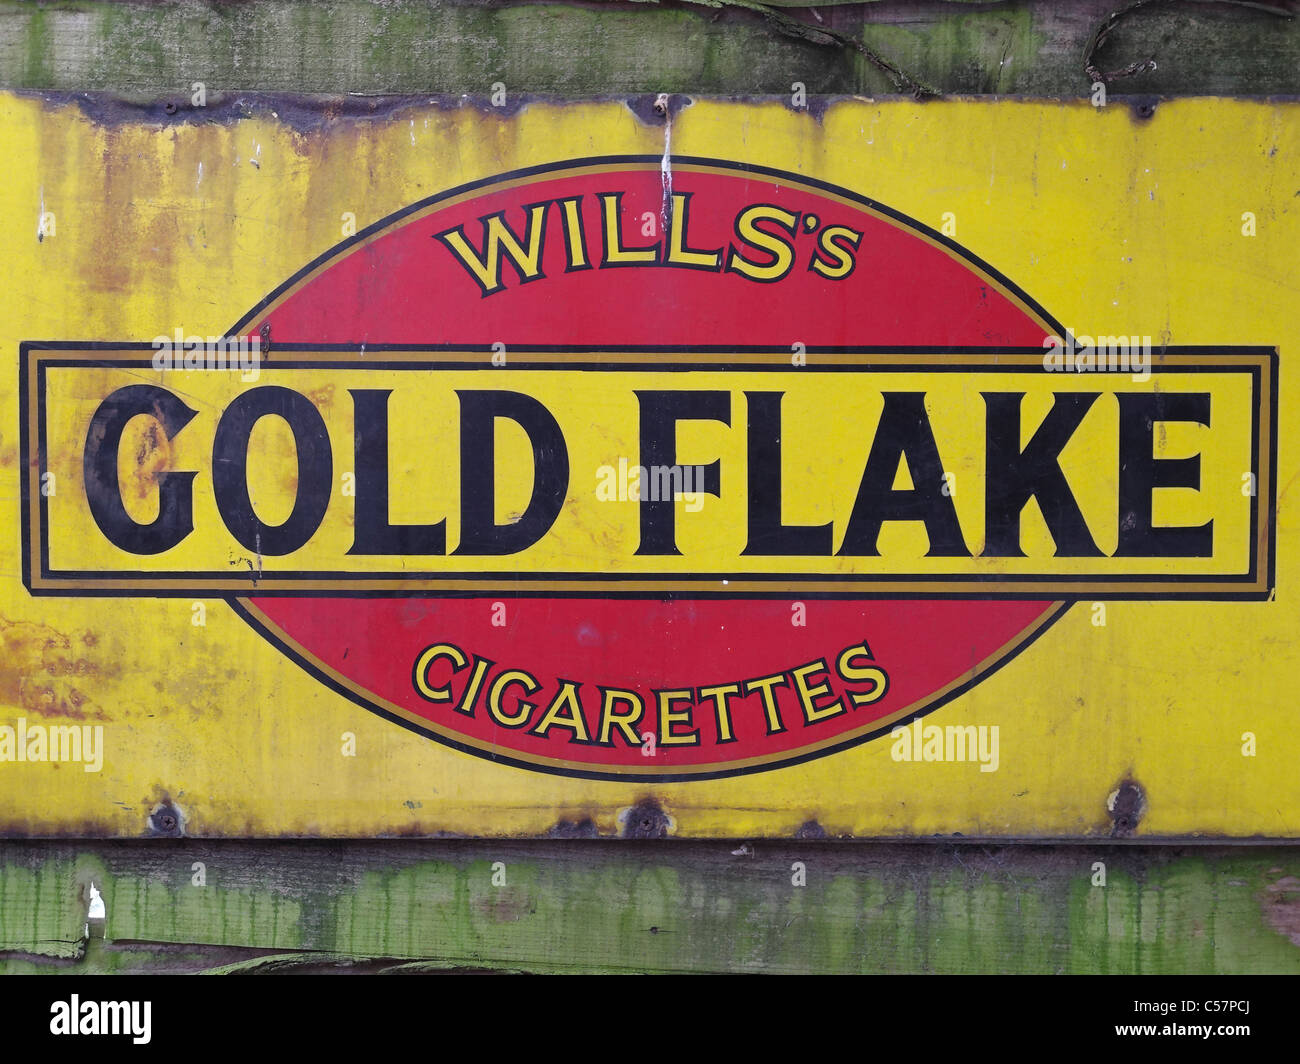 An old enamel sign advertising Wills's 'Gold Flake' cigarettes. - Stock Image